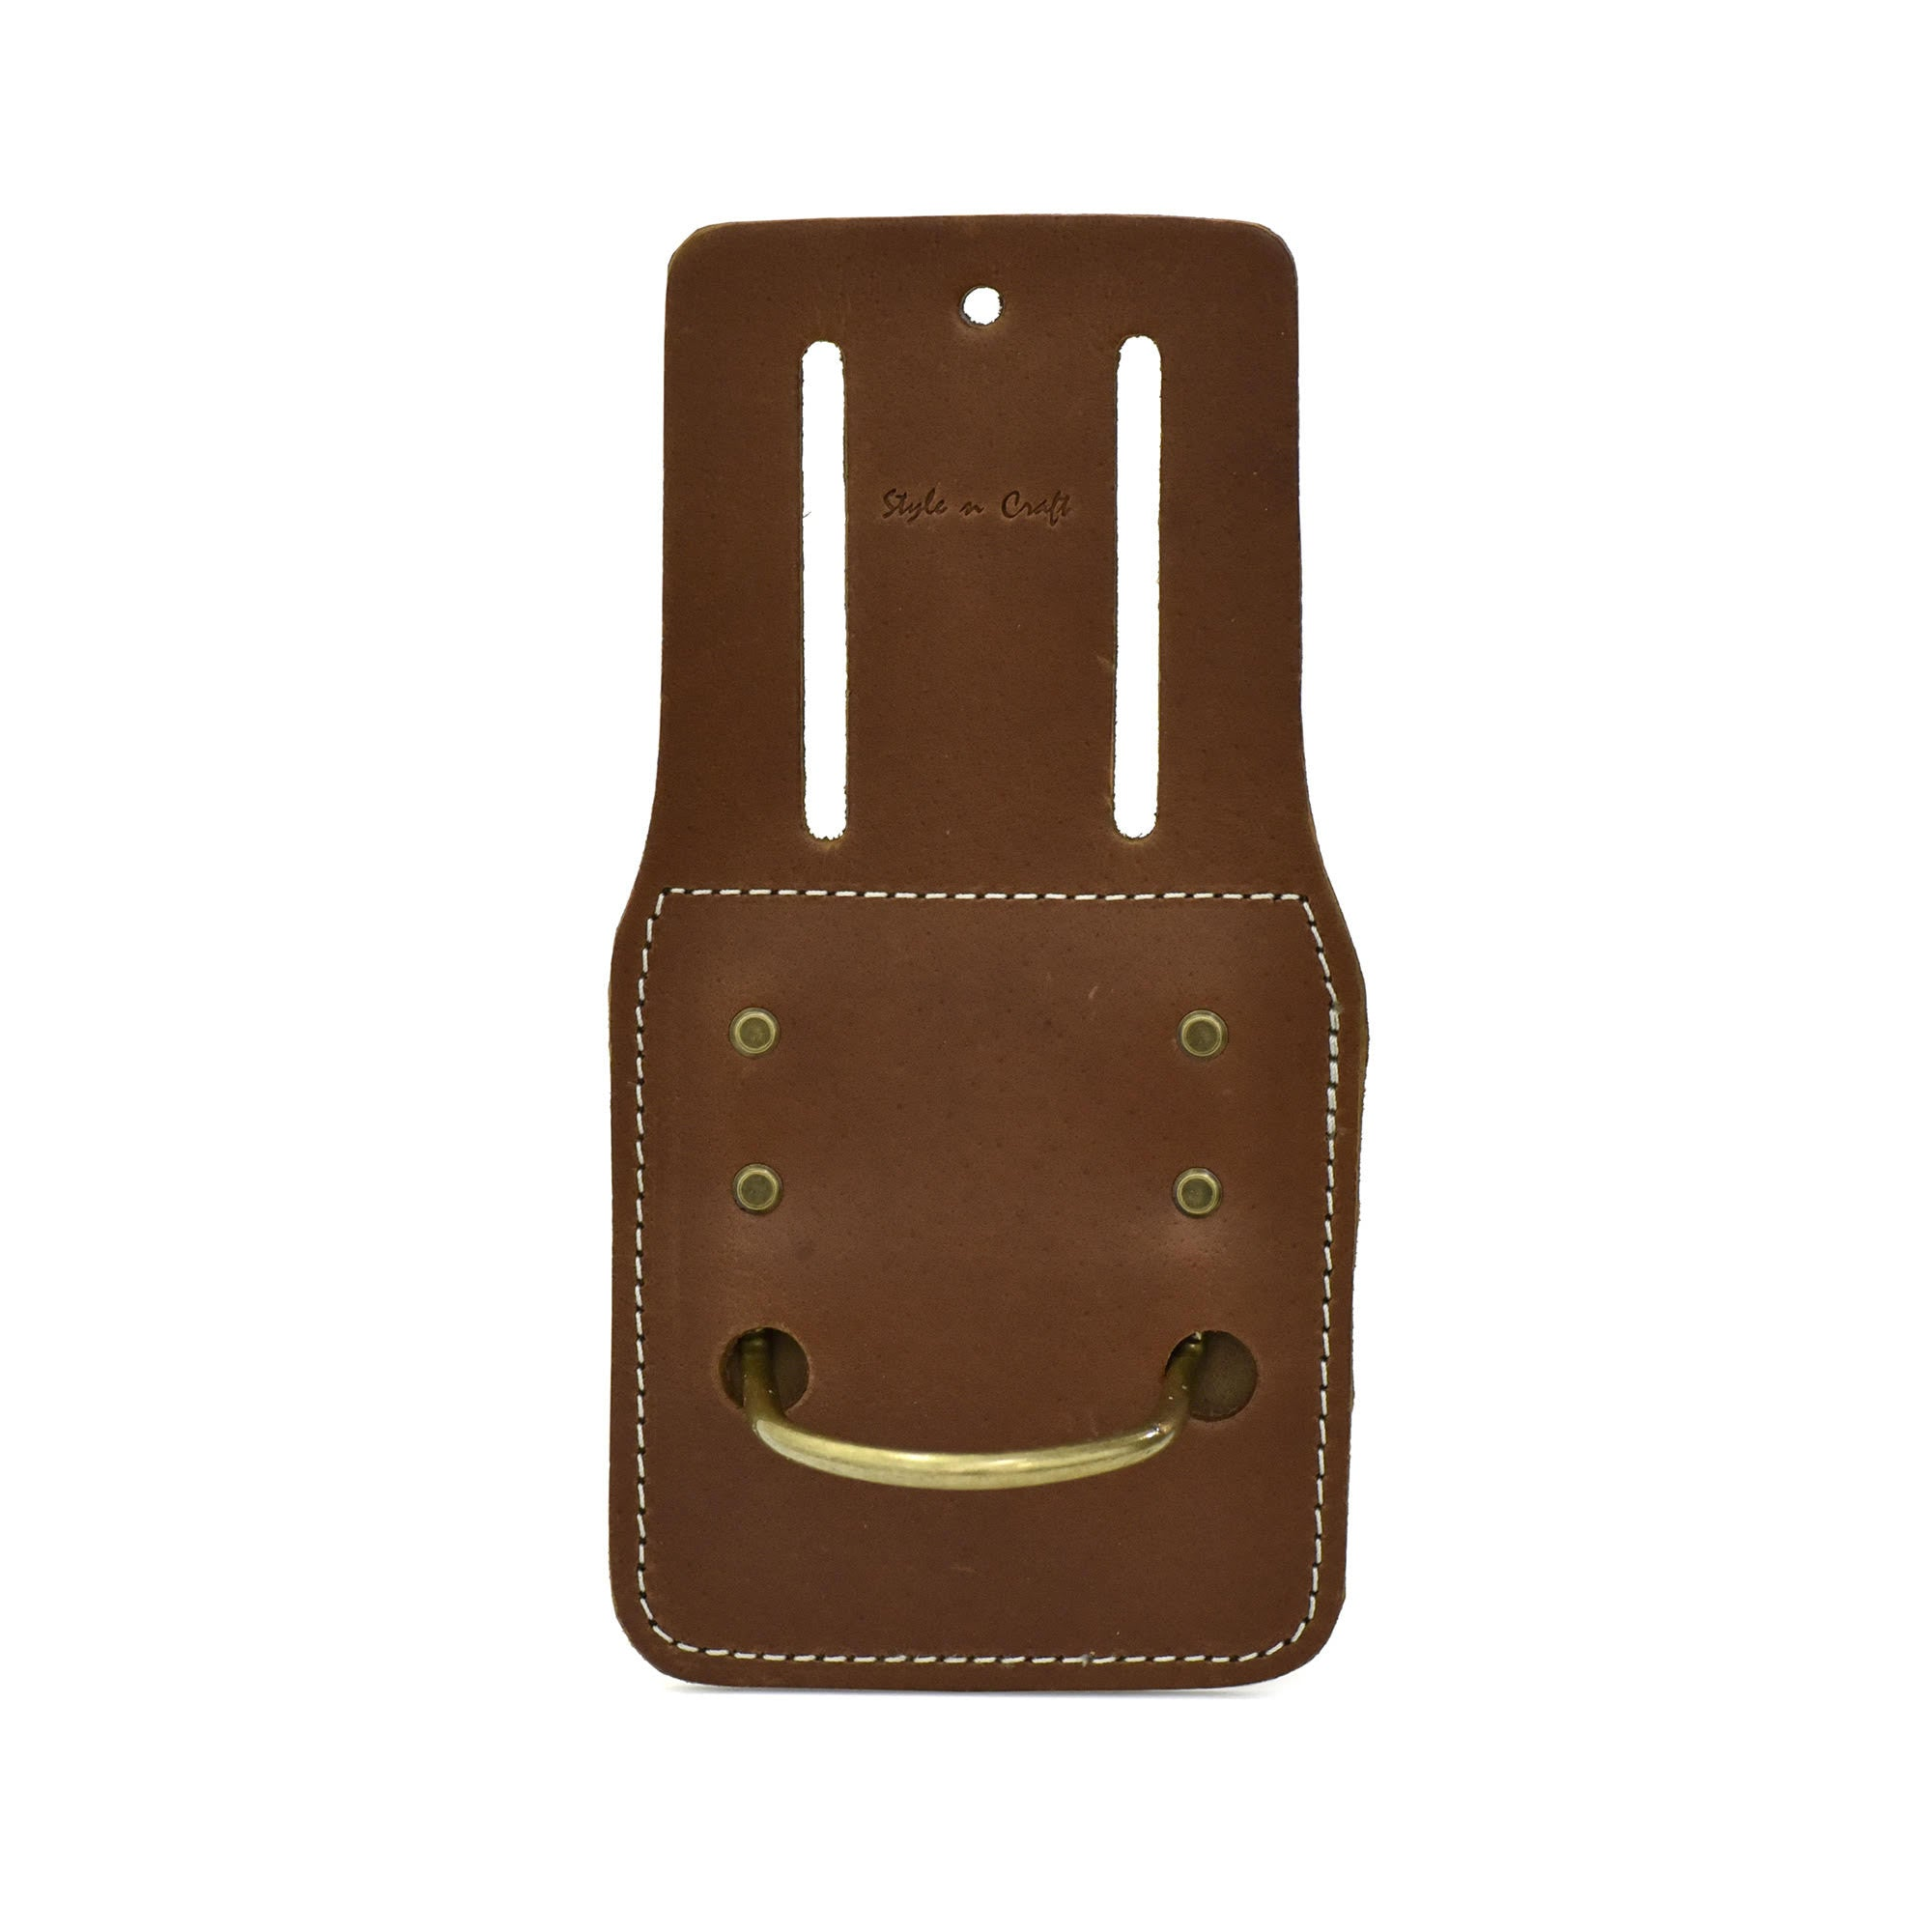 Style n Craft 98438 - Fixed Hammer / Hatchet Holder in Heavy Top Grain Leather in Dark Tan Color